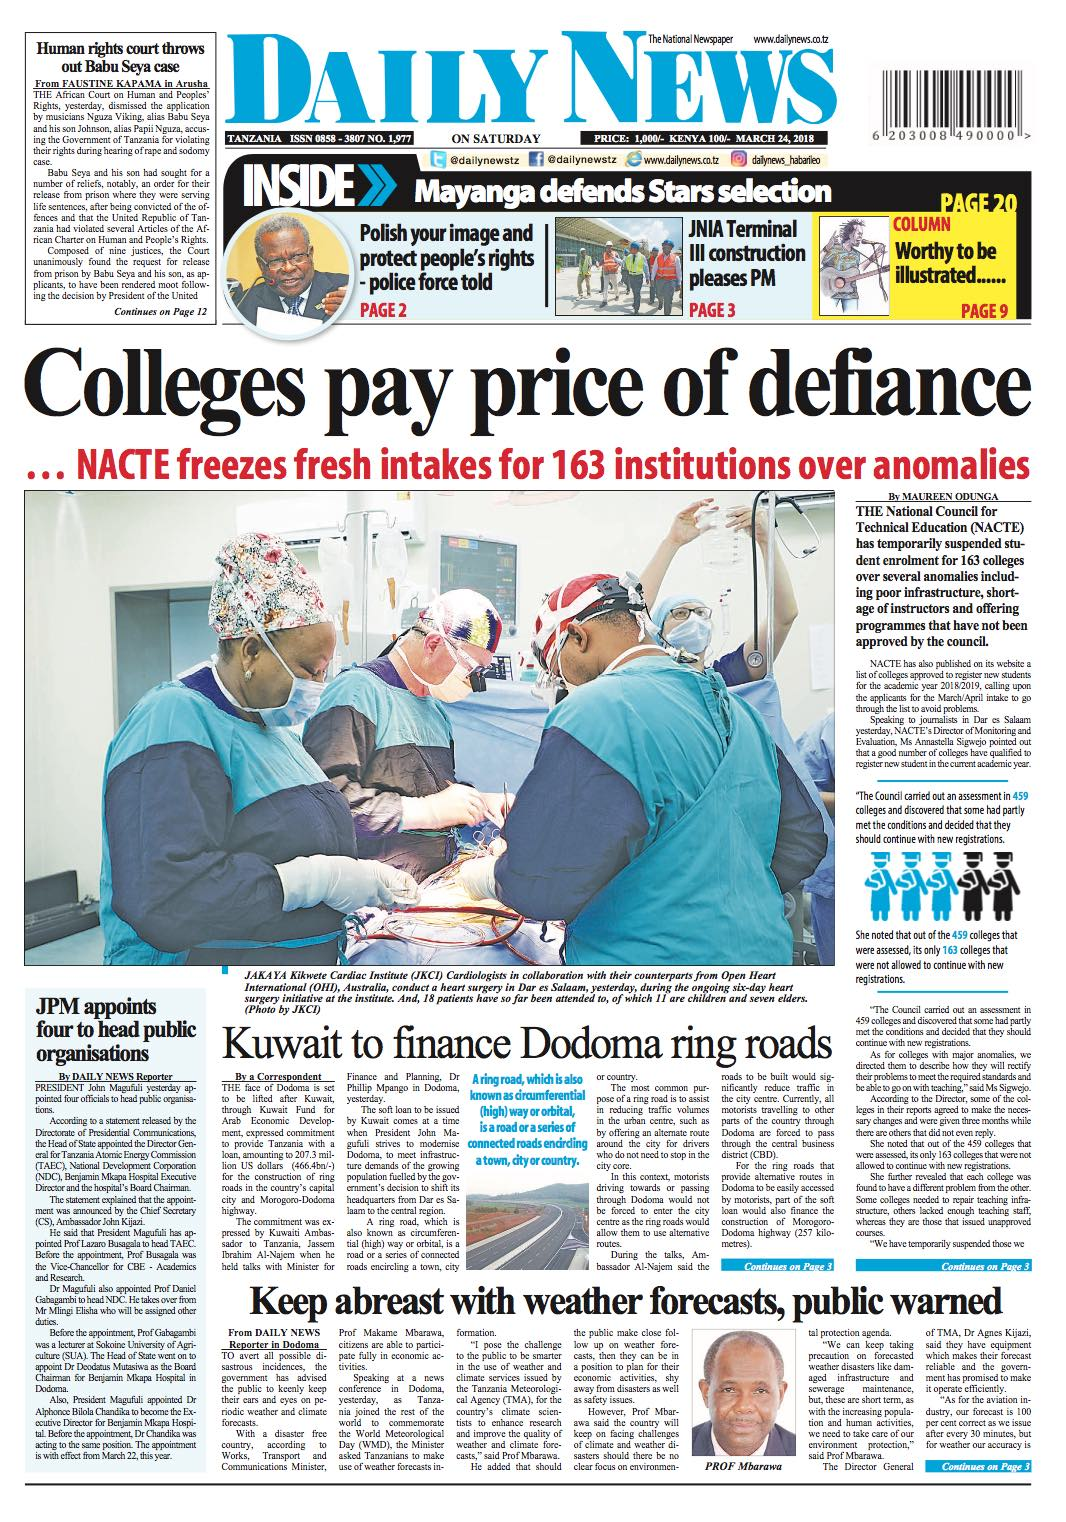 COLLEGES PAY PRICE OF DEFIANCE     NACTE FREEZES FRESH INTAKES FOR 163 INSTITUTIONS OVER ANOMALIES